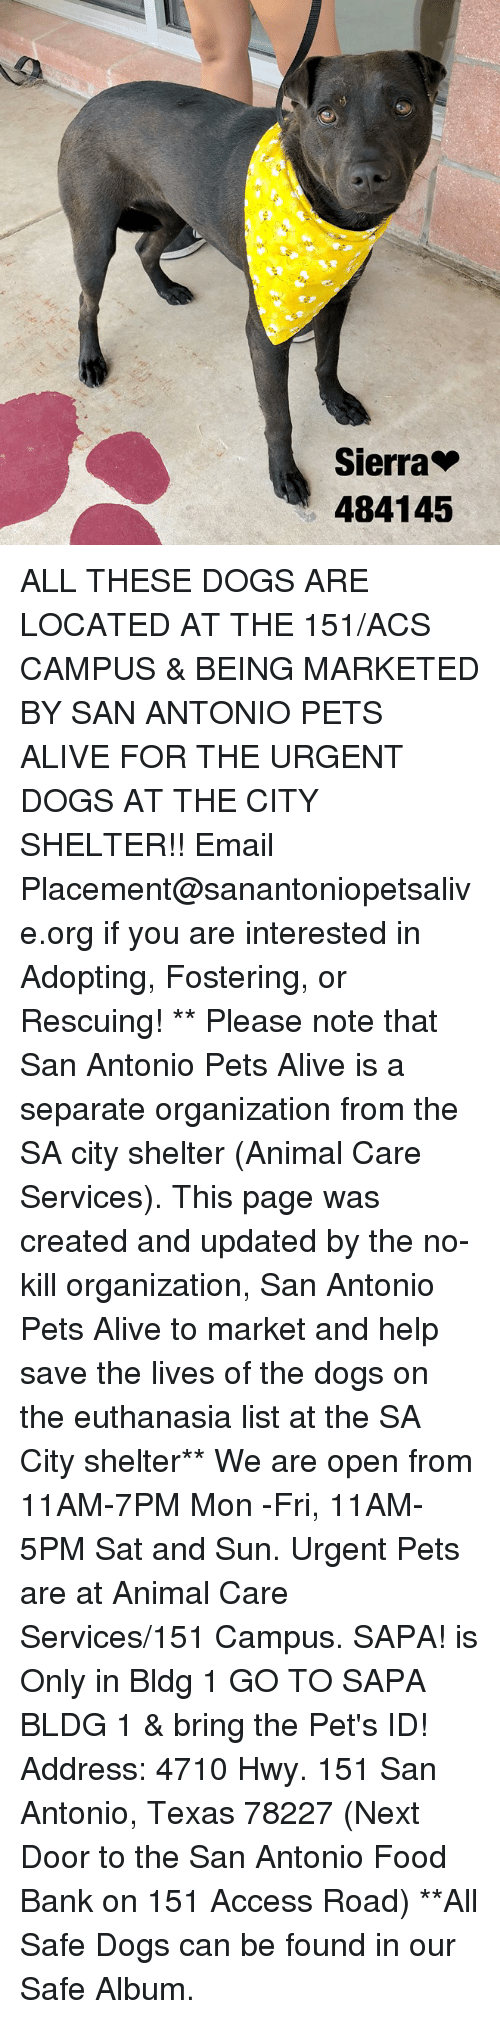 Alive, Dogs, and Food: Sierra  484145 ALL THESE DOGS ARE LOCATED AT THE 151/ACS CAMPUS & BEING MARKETED BY SAN ANTONIO PETS ALIVE FOR THE URGENT DOGS AT THE CITY SHELTER!!  Email Placement@sanantoniopetsalive.org if you are interested in Adopting, Fostering, or Rescuing!                                                                                                                                                                                                                                                                                                                                                             ** Please note that San Antonio Pets Alive is a separate organization from the SA city shelter (Animal Care Services). This page was created and updated by the no-kill organization, San Antonio Pets Alive to market and help save the lives of the dogs on the euthanasia list at the SA City shelter**  We are open from 11AM-7PM Mon -Fri, 11AM-5PM Sat and Sun. Urgent Pets are at Animal Care Services/151 Campus. SAPA! is Only in Bldg 1 GO TO SAPA BLDG 1 & bring the Pet's ID! Address: 4710 Hwy. 151 San Antonio, Texas 78227 (Next Door to the San Antonio Food Bank on 151 Access Road) **All Safe Dogs can be found in our Safe Album.